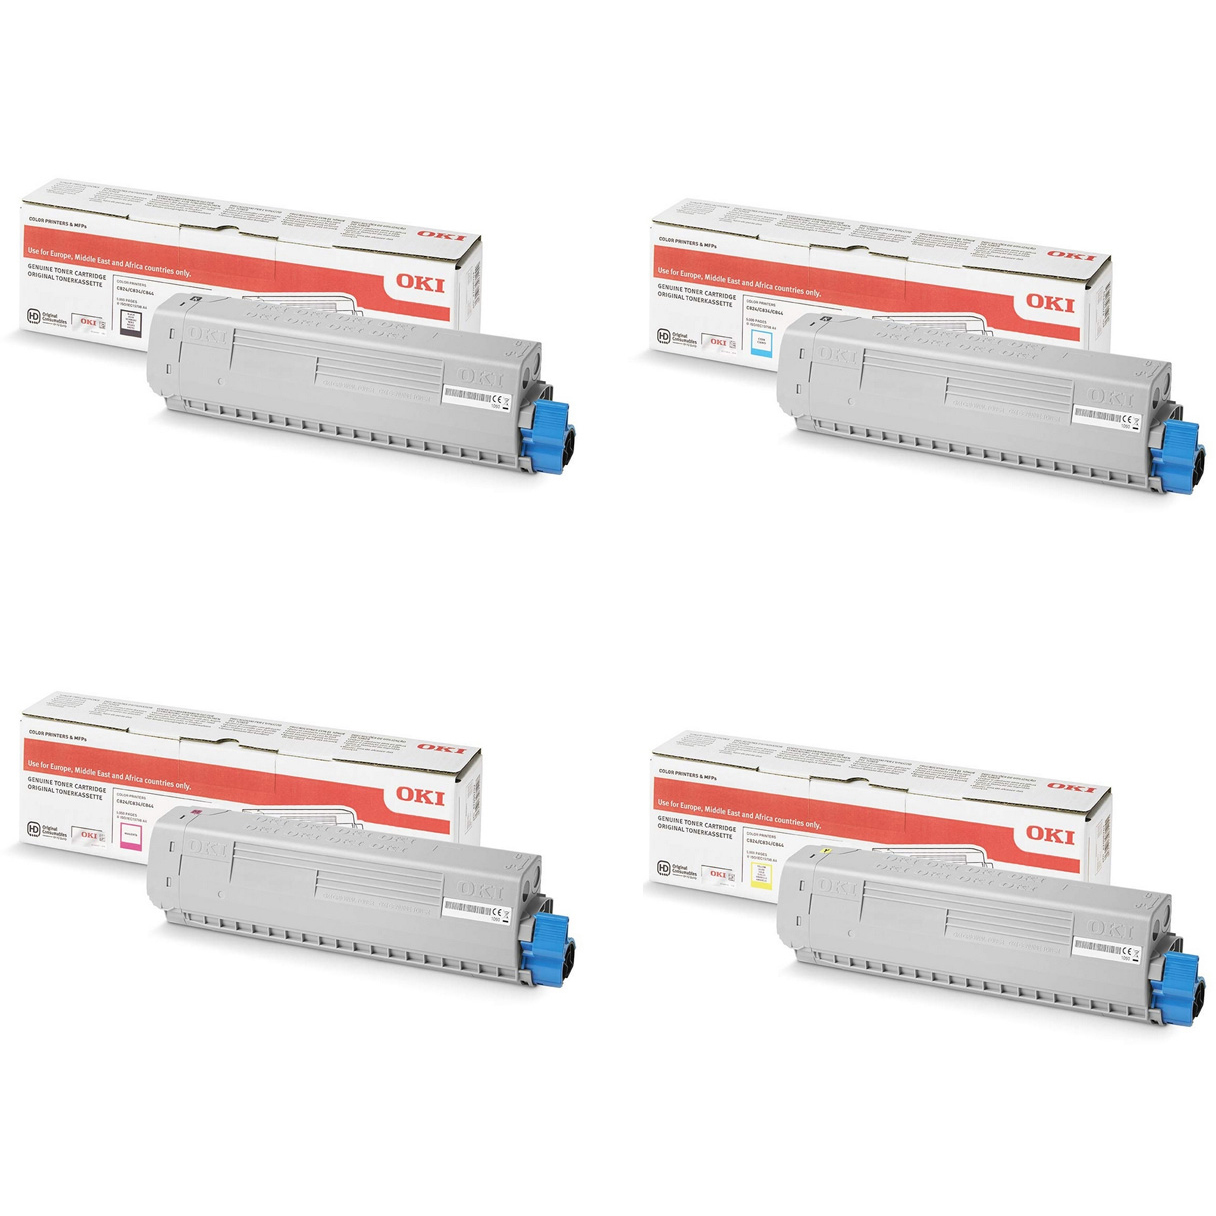 Original Oki 4709570 CMYK Multipack Toner Cartridges (47095704/ 47095703/ 47095702/ 47095701)